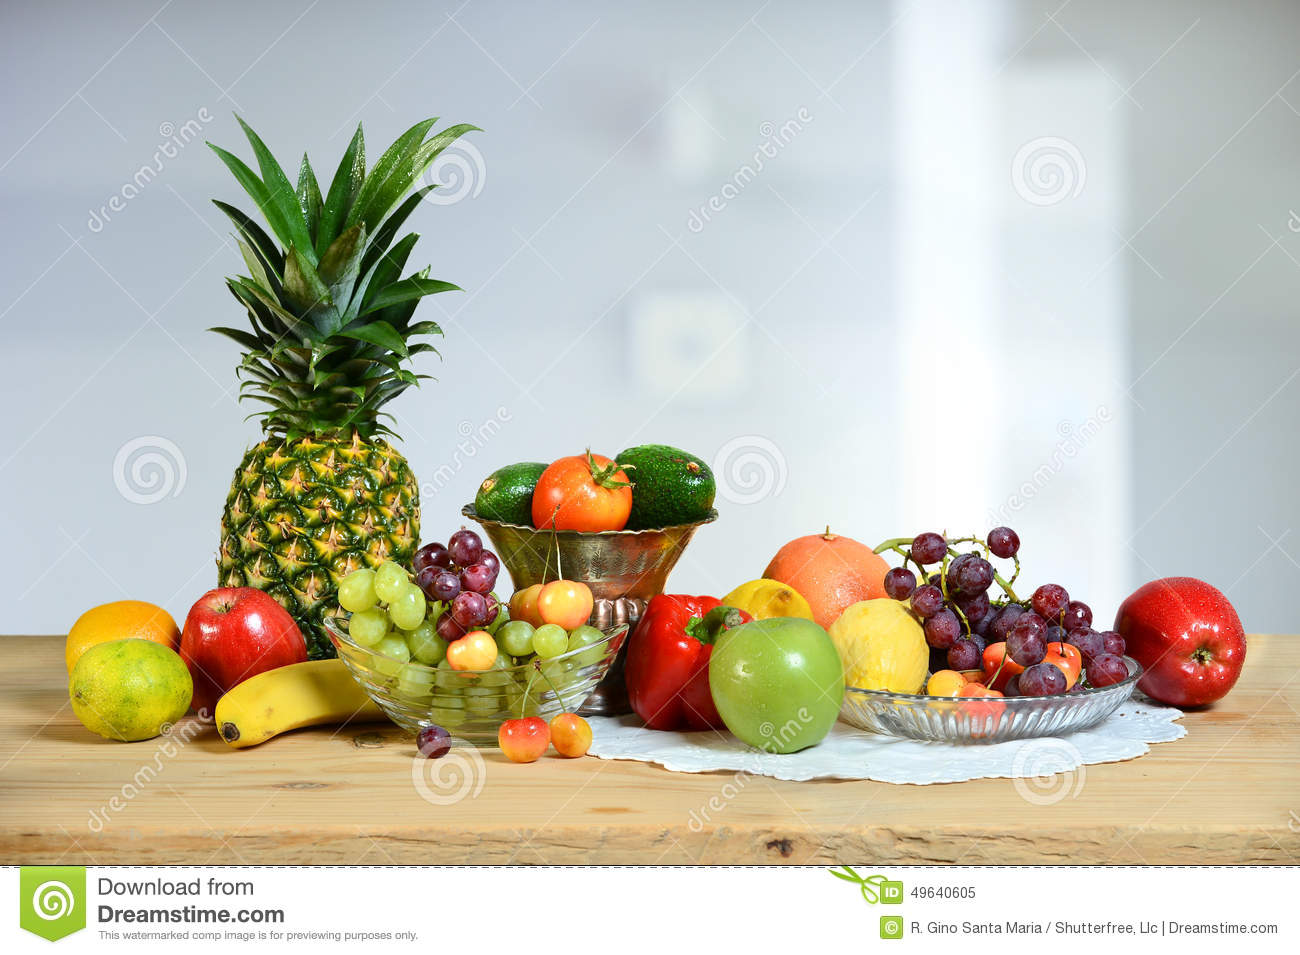 Assortment Of Fruits And Vegetables On Table Stock Image